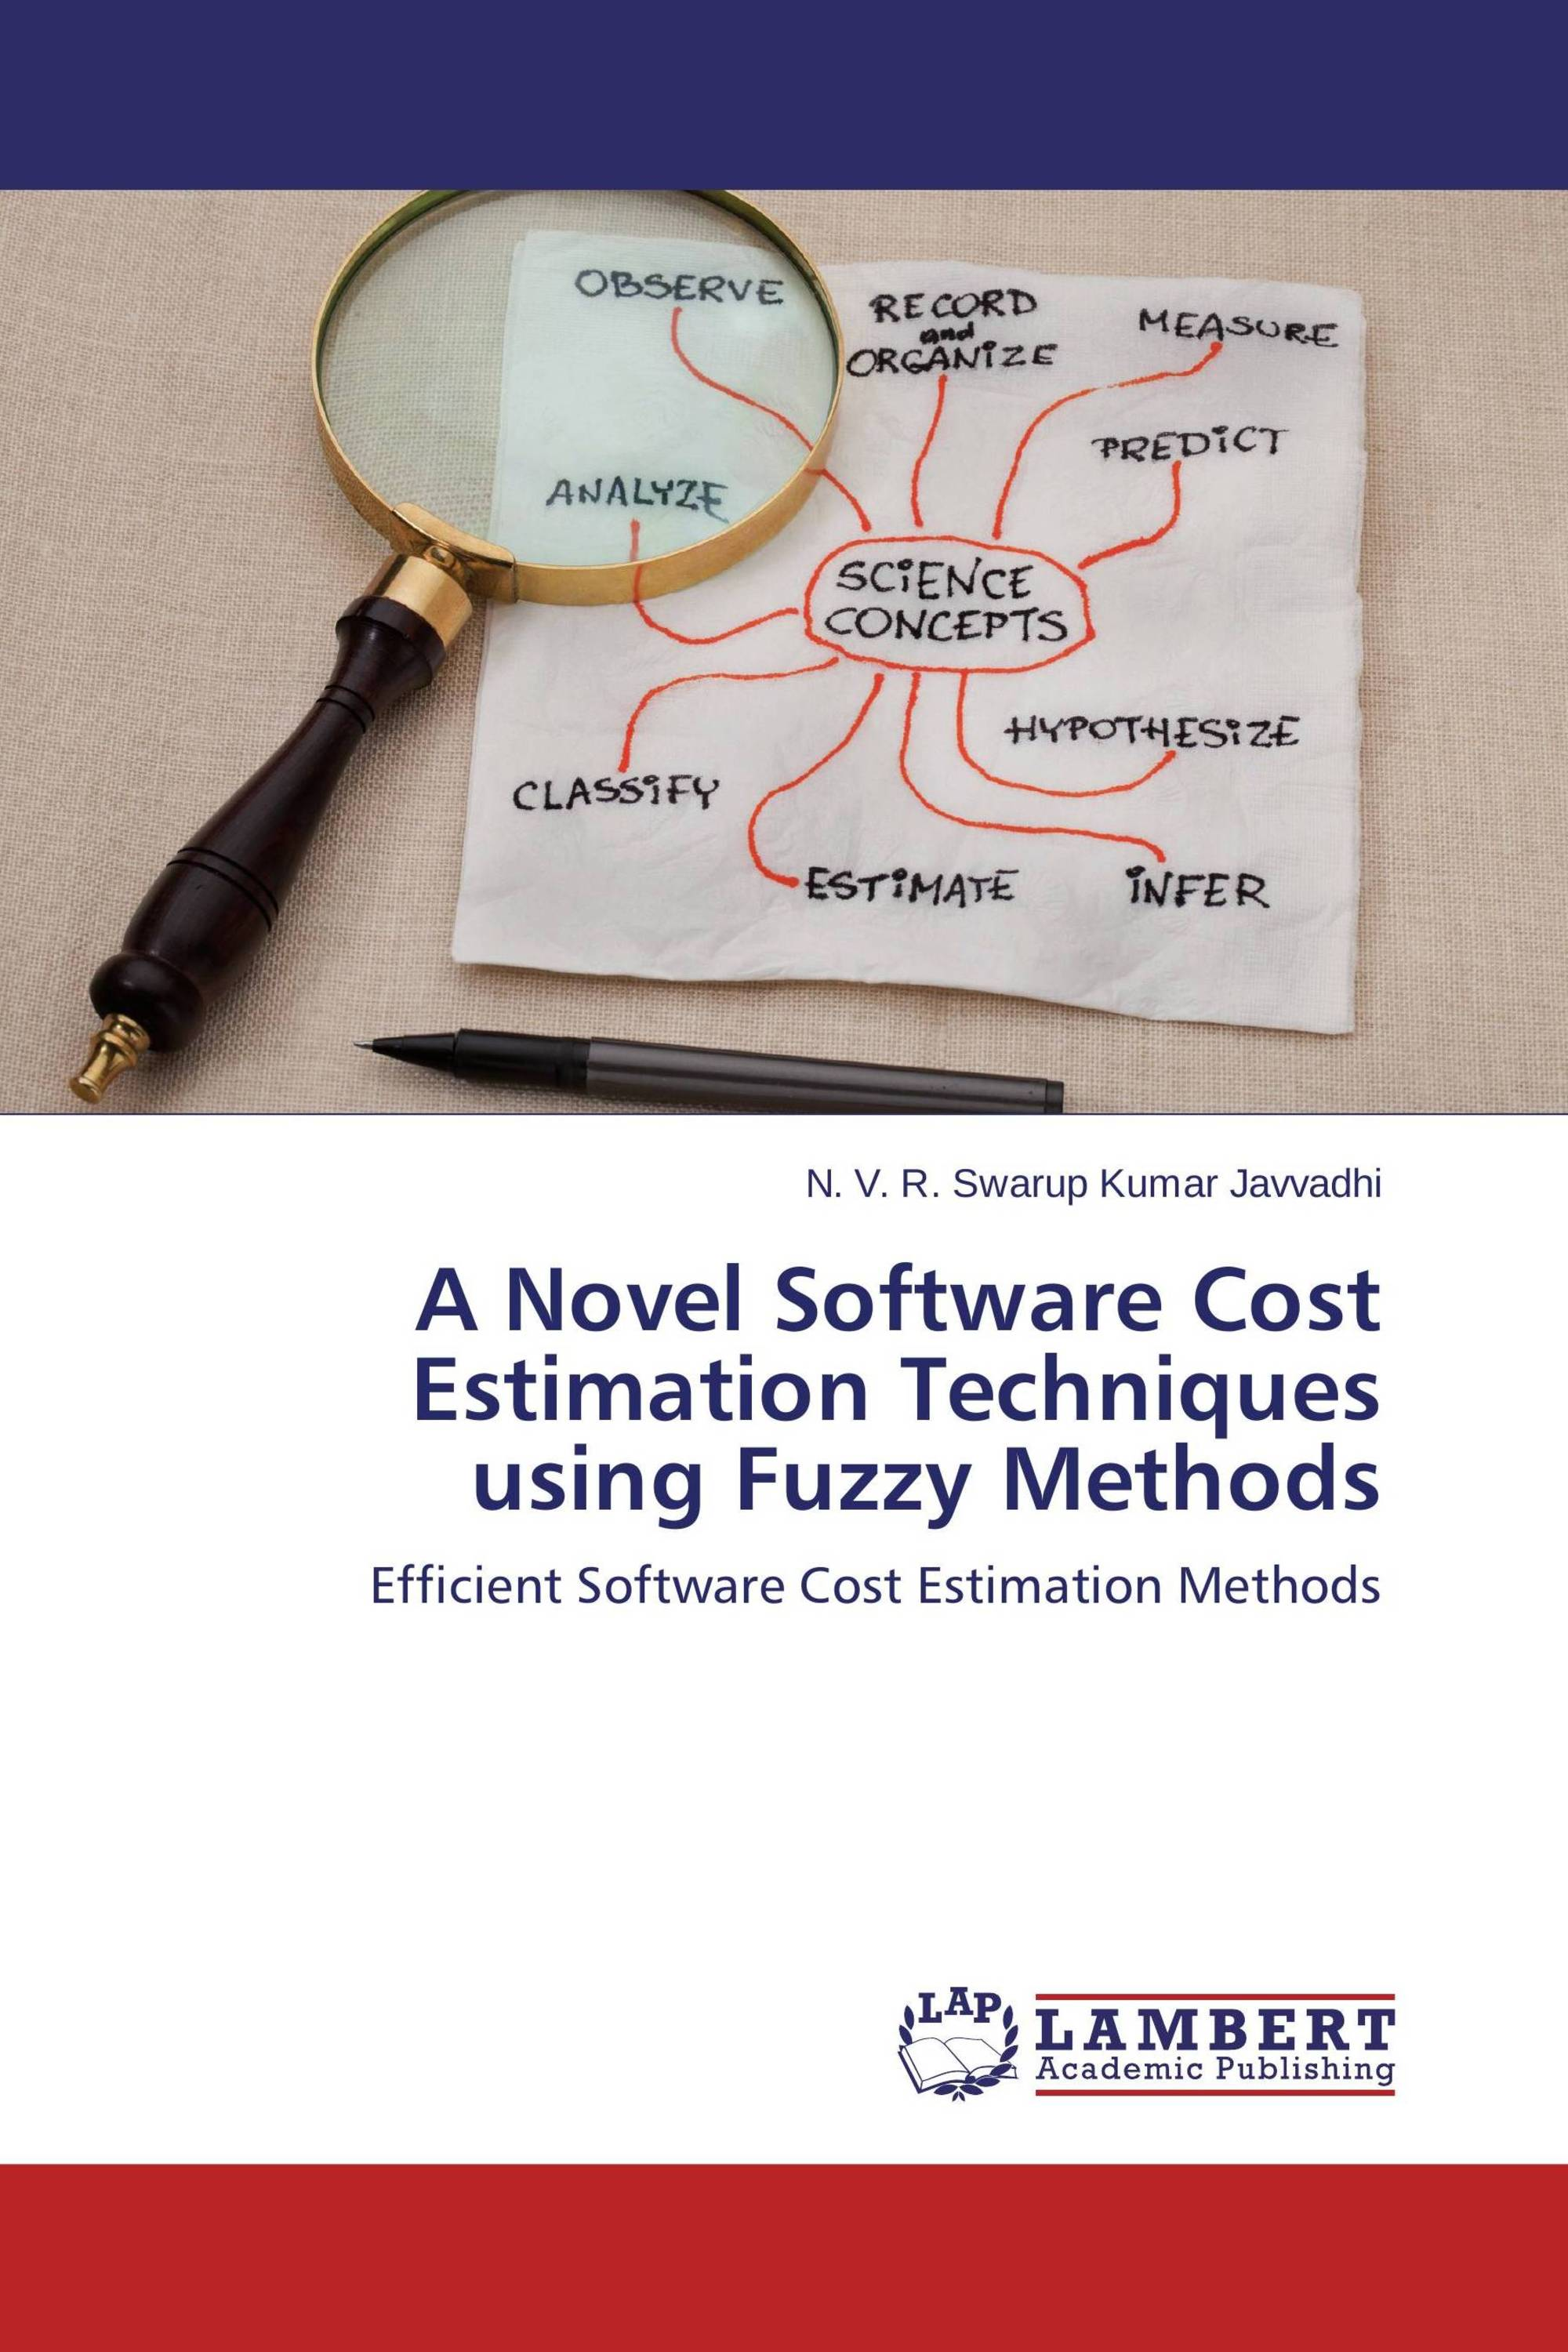 A Novel Software Cost Estimation Techniques using Fuzzy Methods